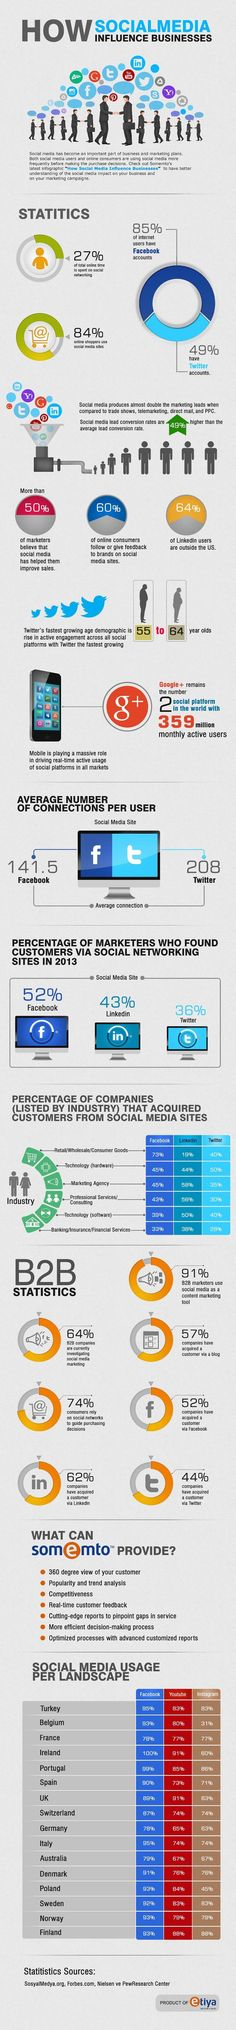 How does #SocialMedia leave a footprint on your business? Research has been compiled to reveal the power social media has over your #B2B business. #Infographic